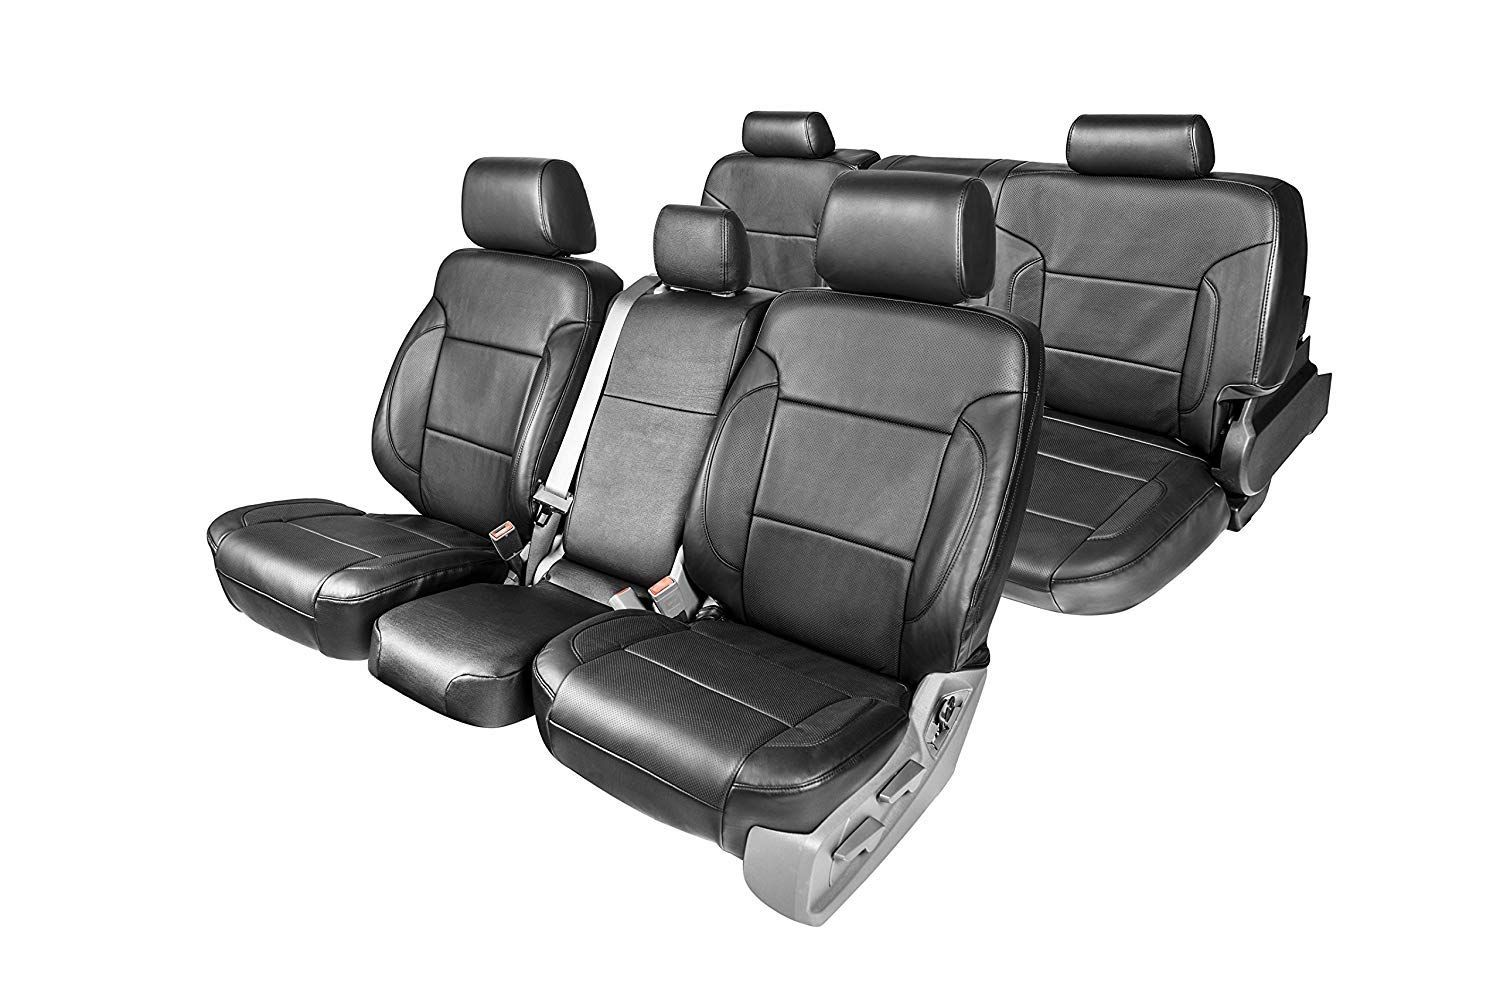 Clazzio 212012blkk Black Leather Front and Rear Row Seat